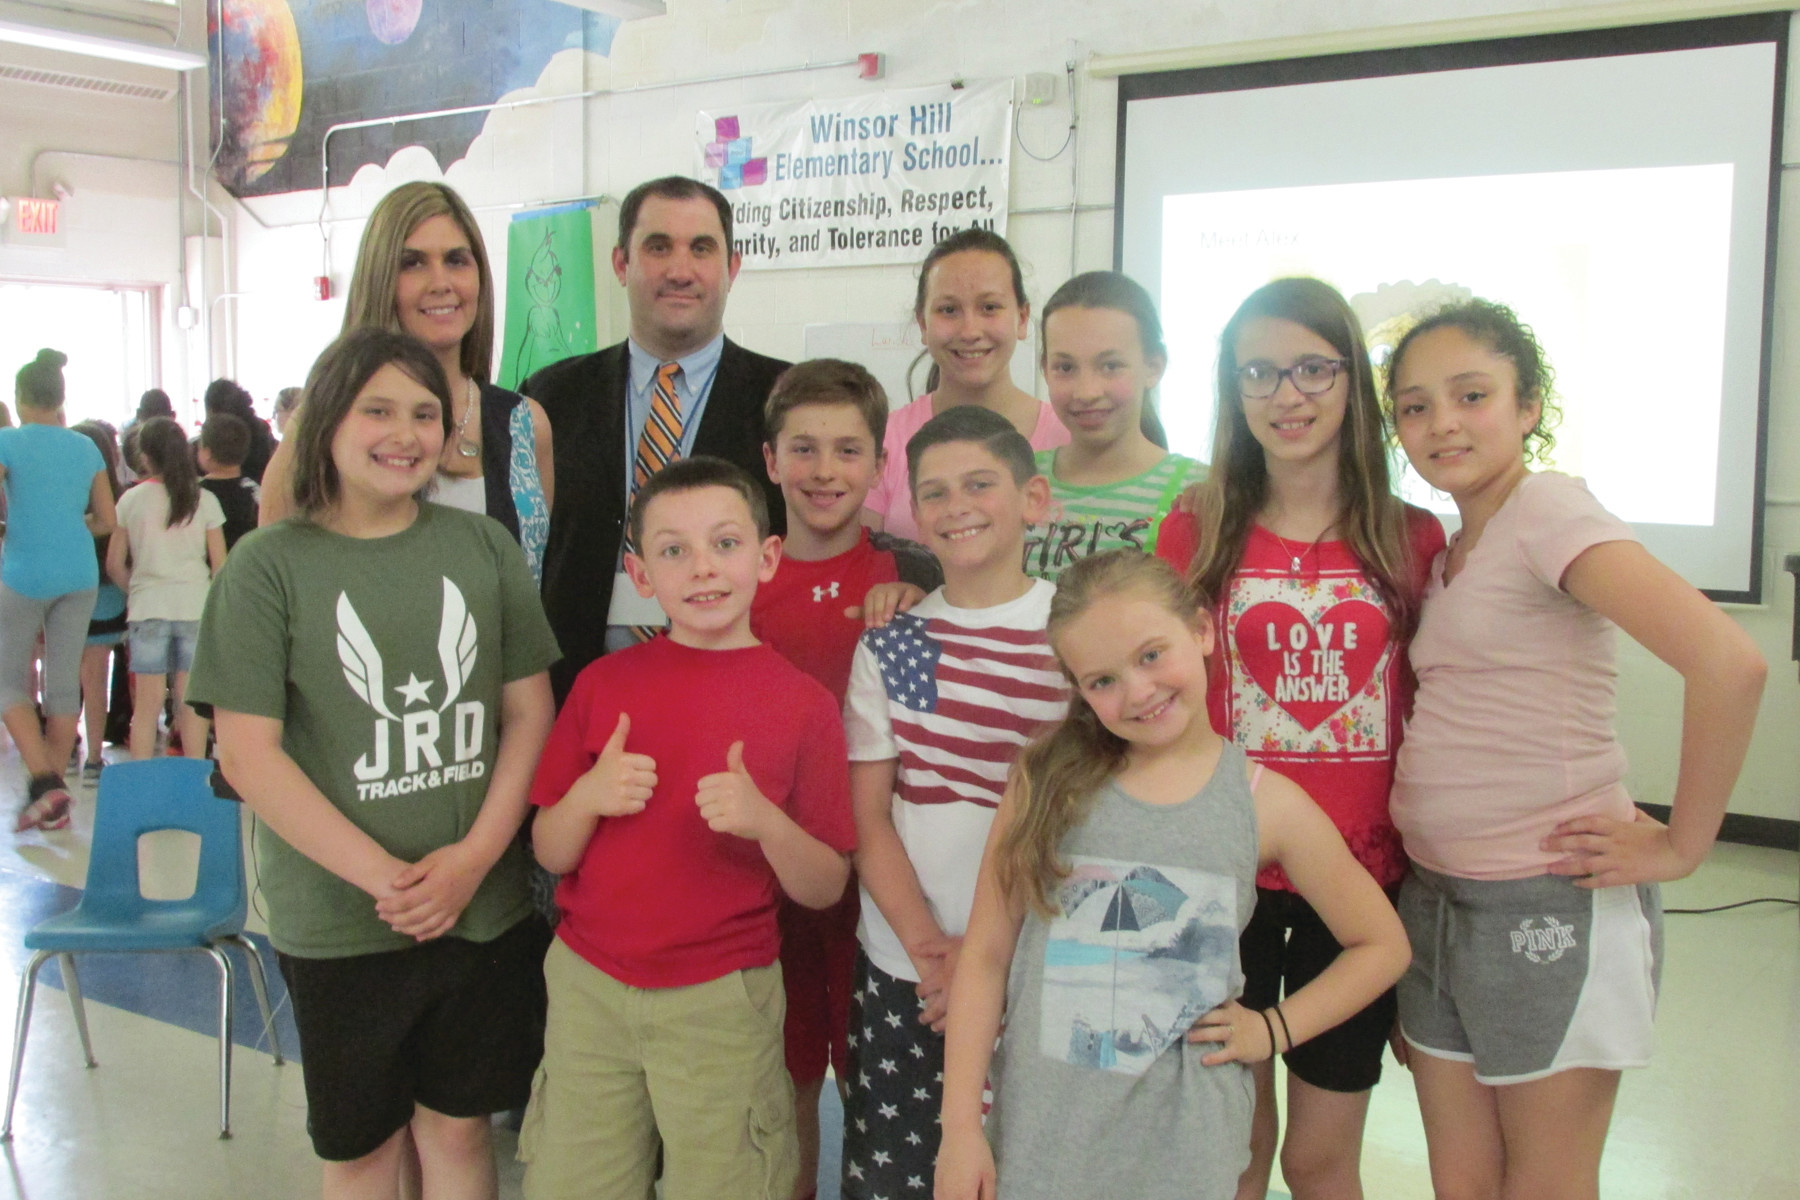 HEALTHY KIDS DAY: Winsor Hill Elementary School Principal Michele Zarcaro and Detective Eric Baccari are joined by students after last Thursday's Healthy Kids Day.